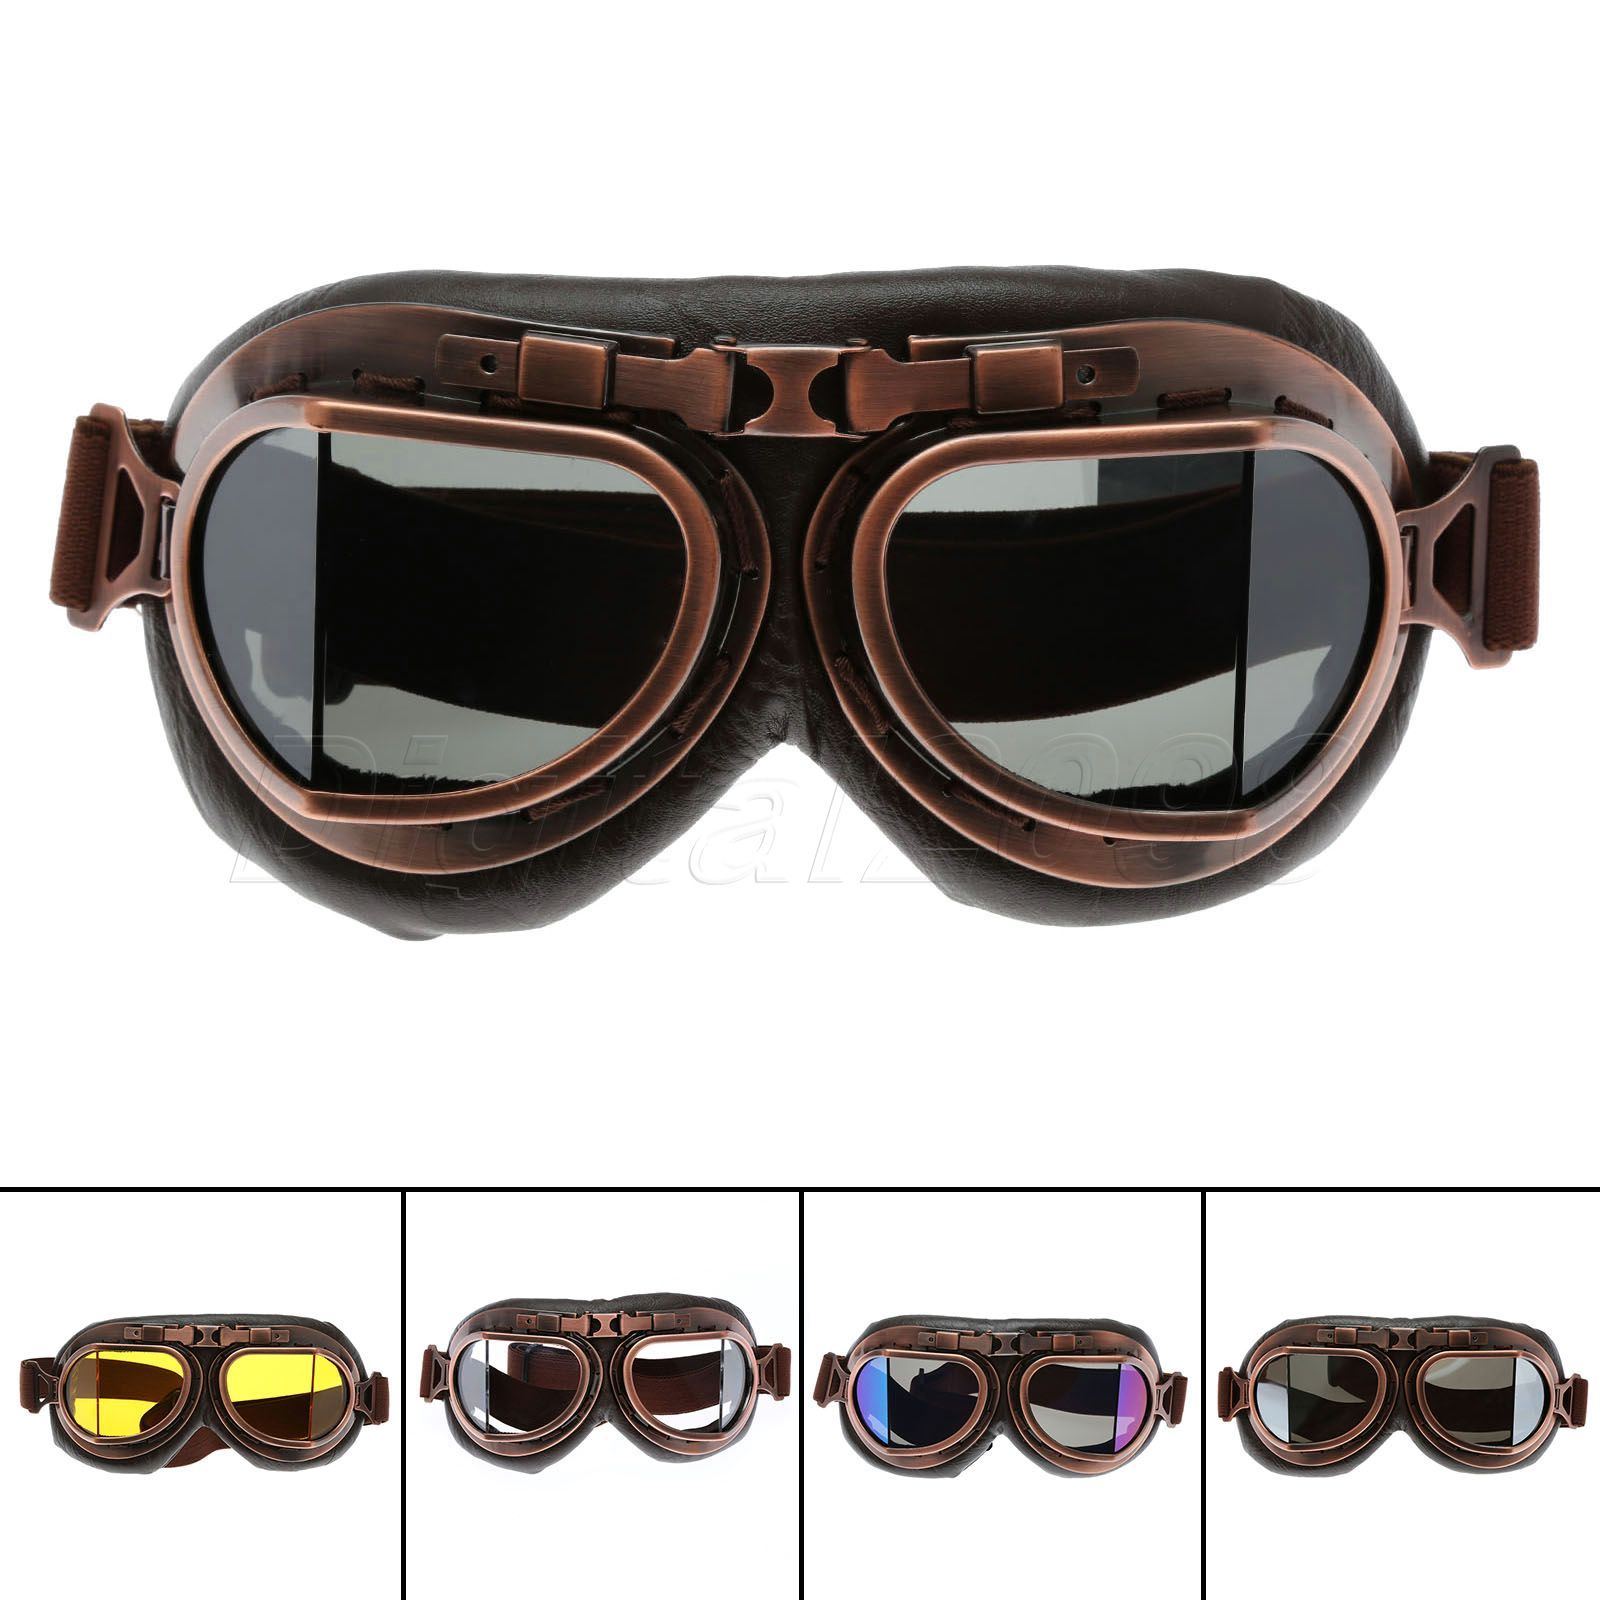 Yetaha WWII RAF Vintage <font><b>Motorcycle</b></font> Goggles Harley Motocross Aviator Pilot Cruiser Glasses ATV Dirt Bike Motor Helmet 5 Colors